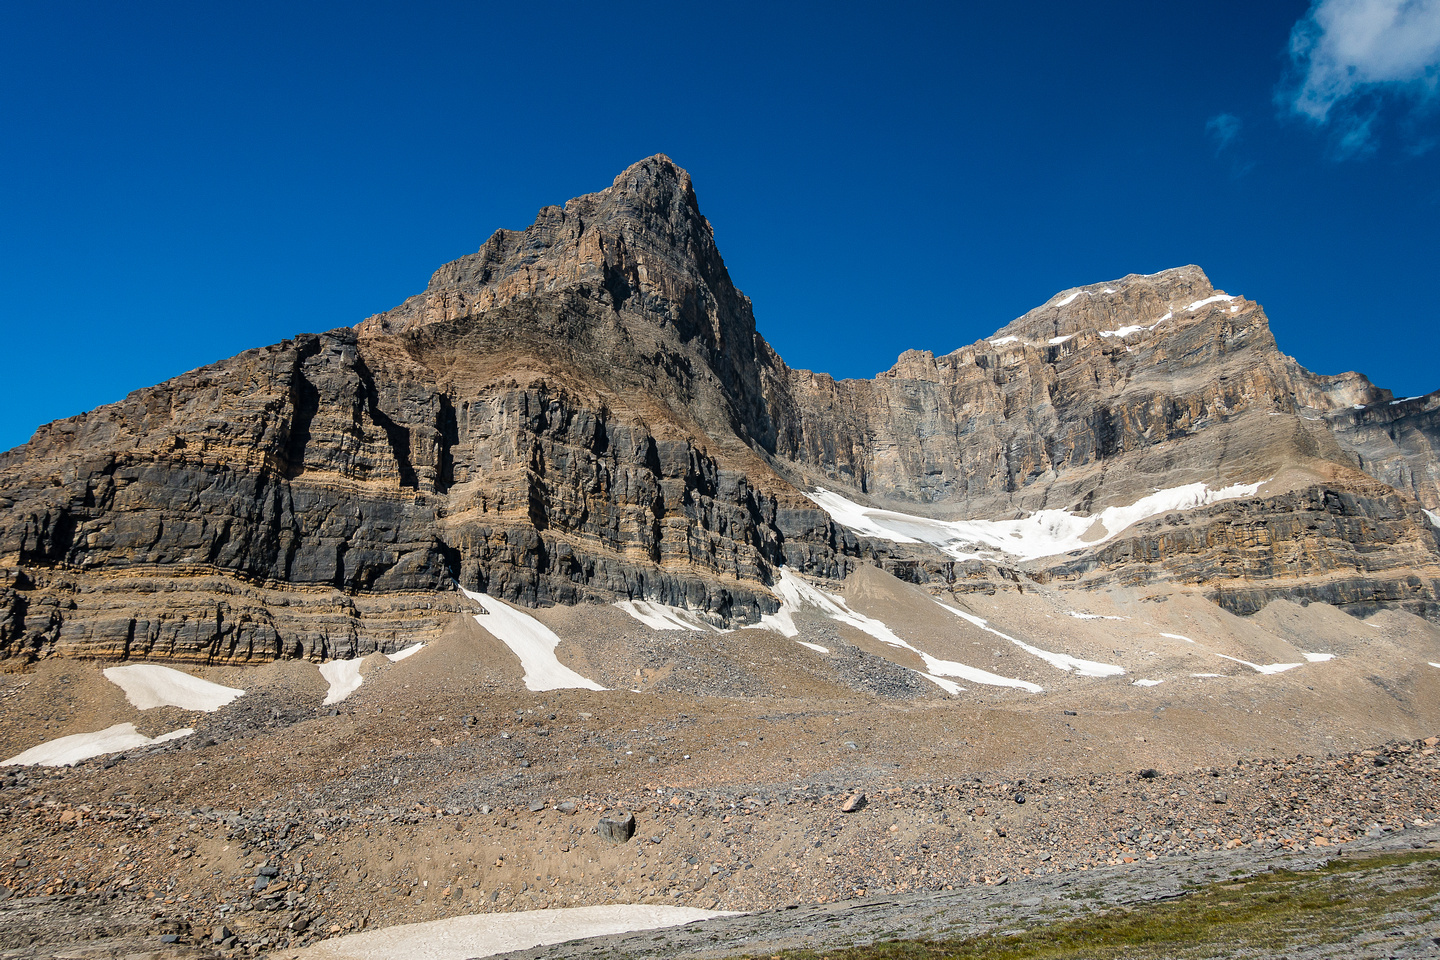 Looking up at Portal (L) and Thompson (R) from the plateau. Note the snow patches on the left. I ascended on climber's left of the leftmost patch